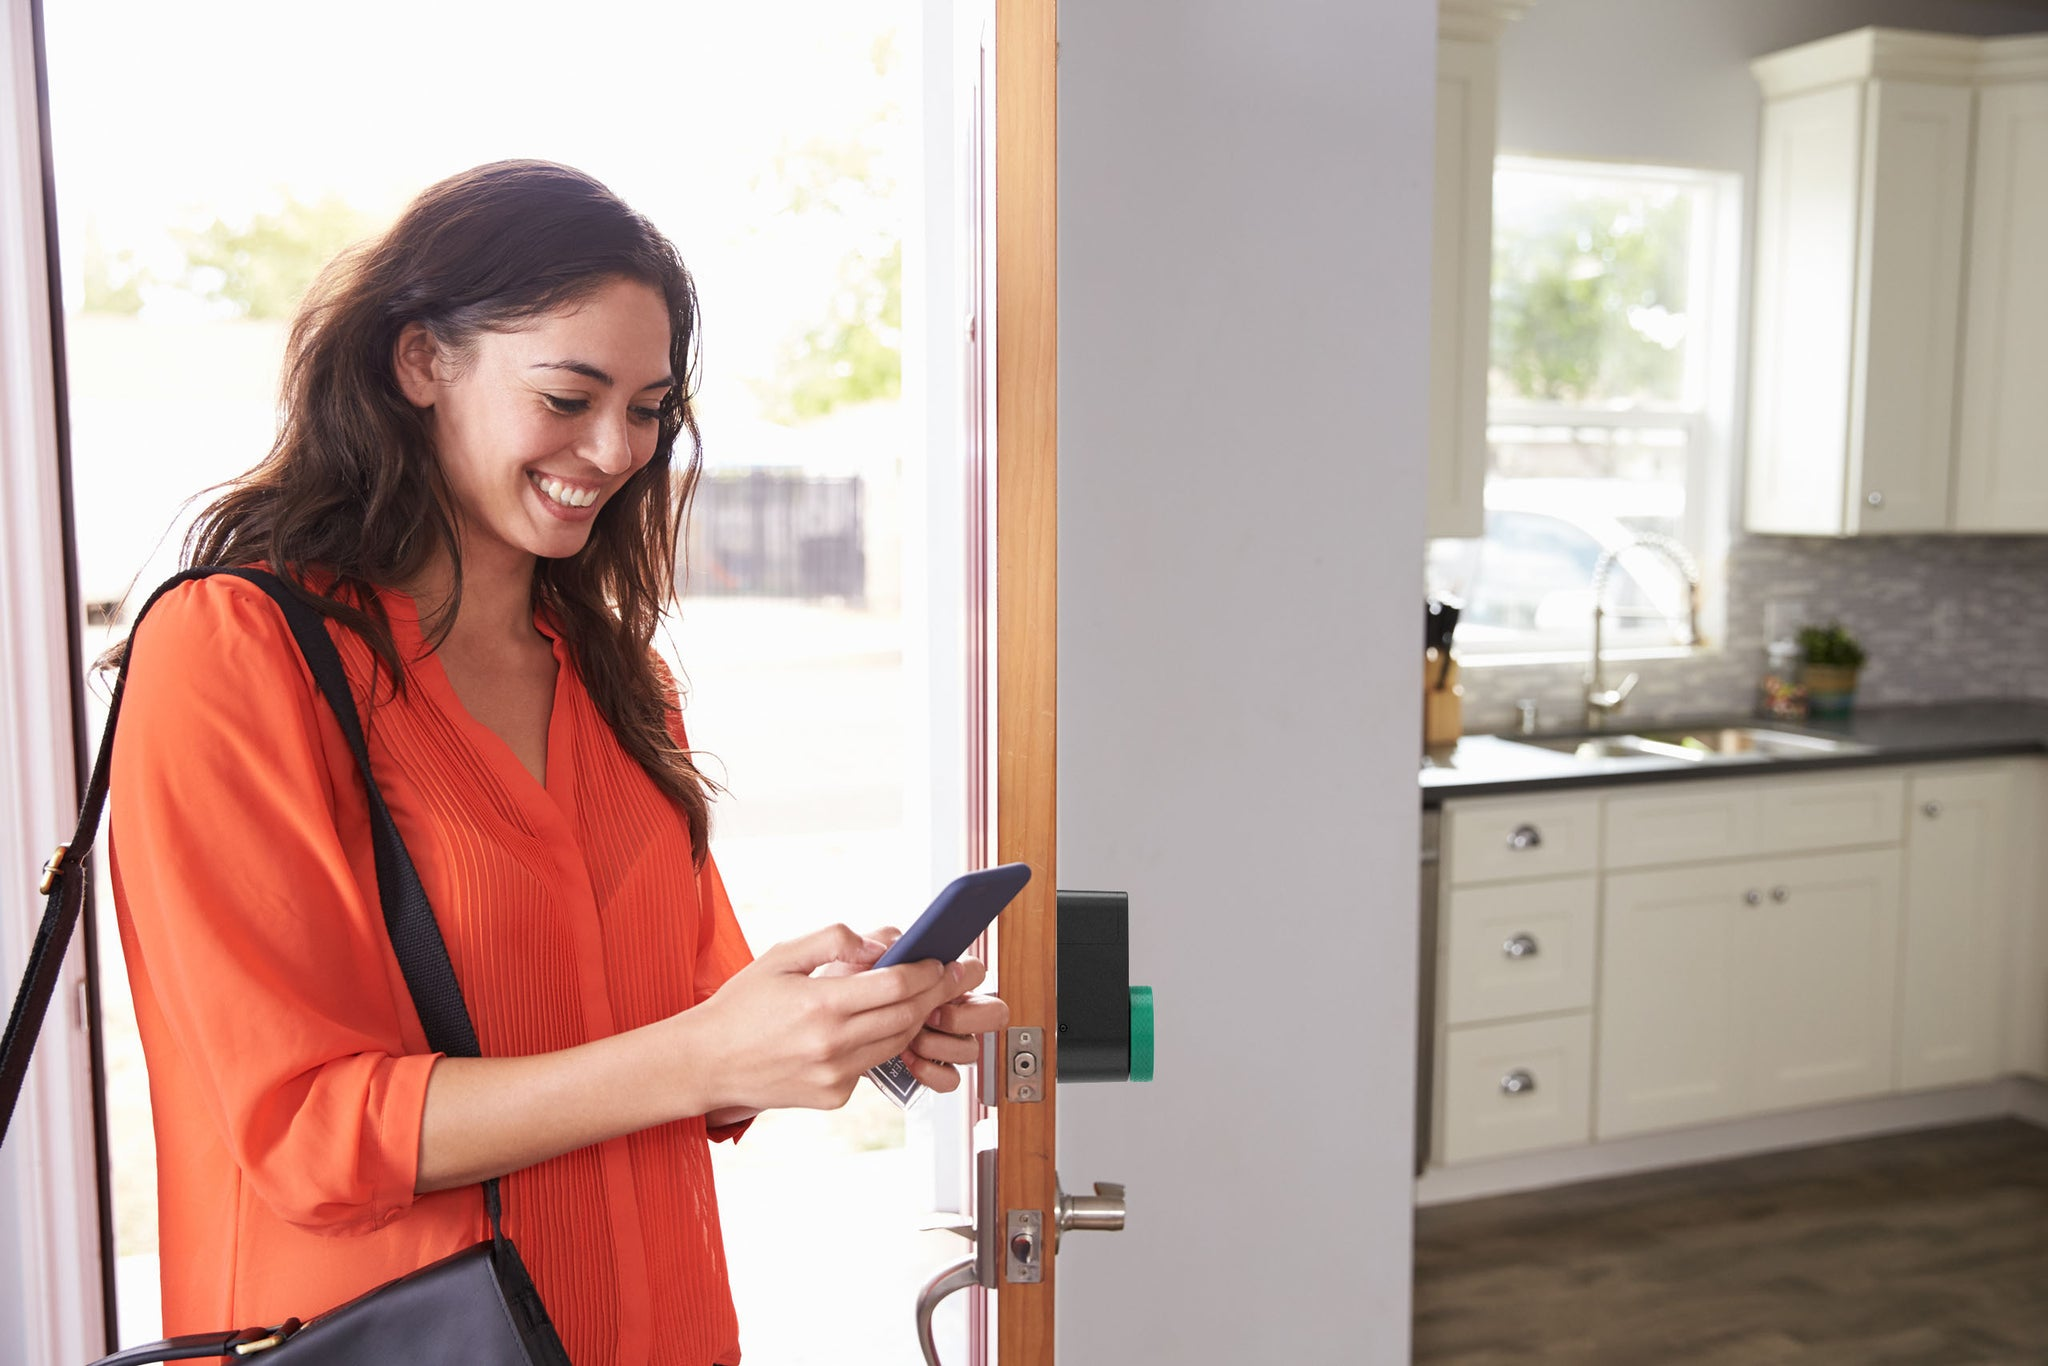 Girl entering the house using the smartphone and smart lock